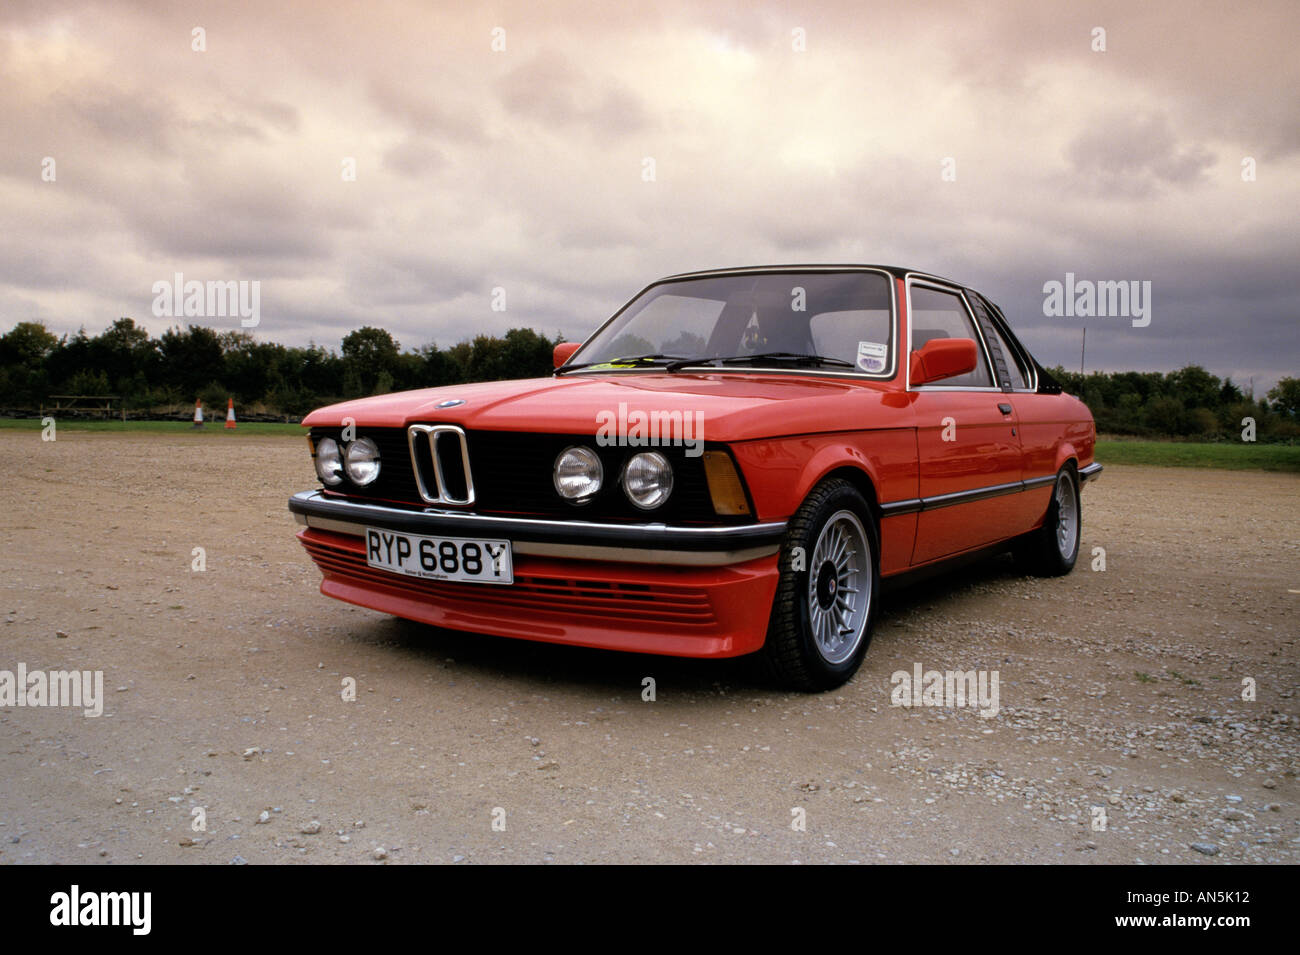 BMW 3 Series bmw 3 series convertible 3 Series Bmw Convertible Stock Photos & 3 Series Bmw Convertible ...